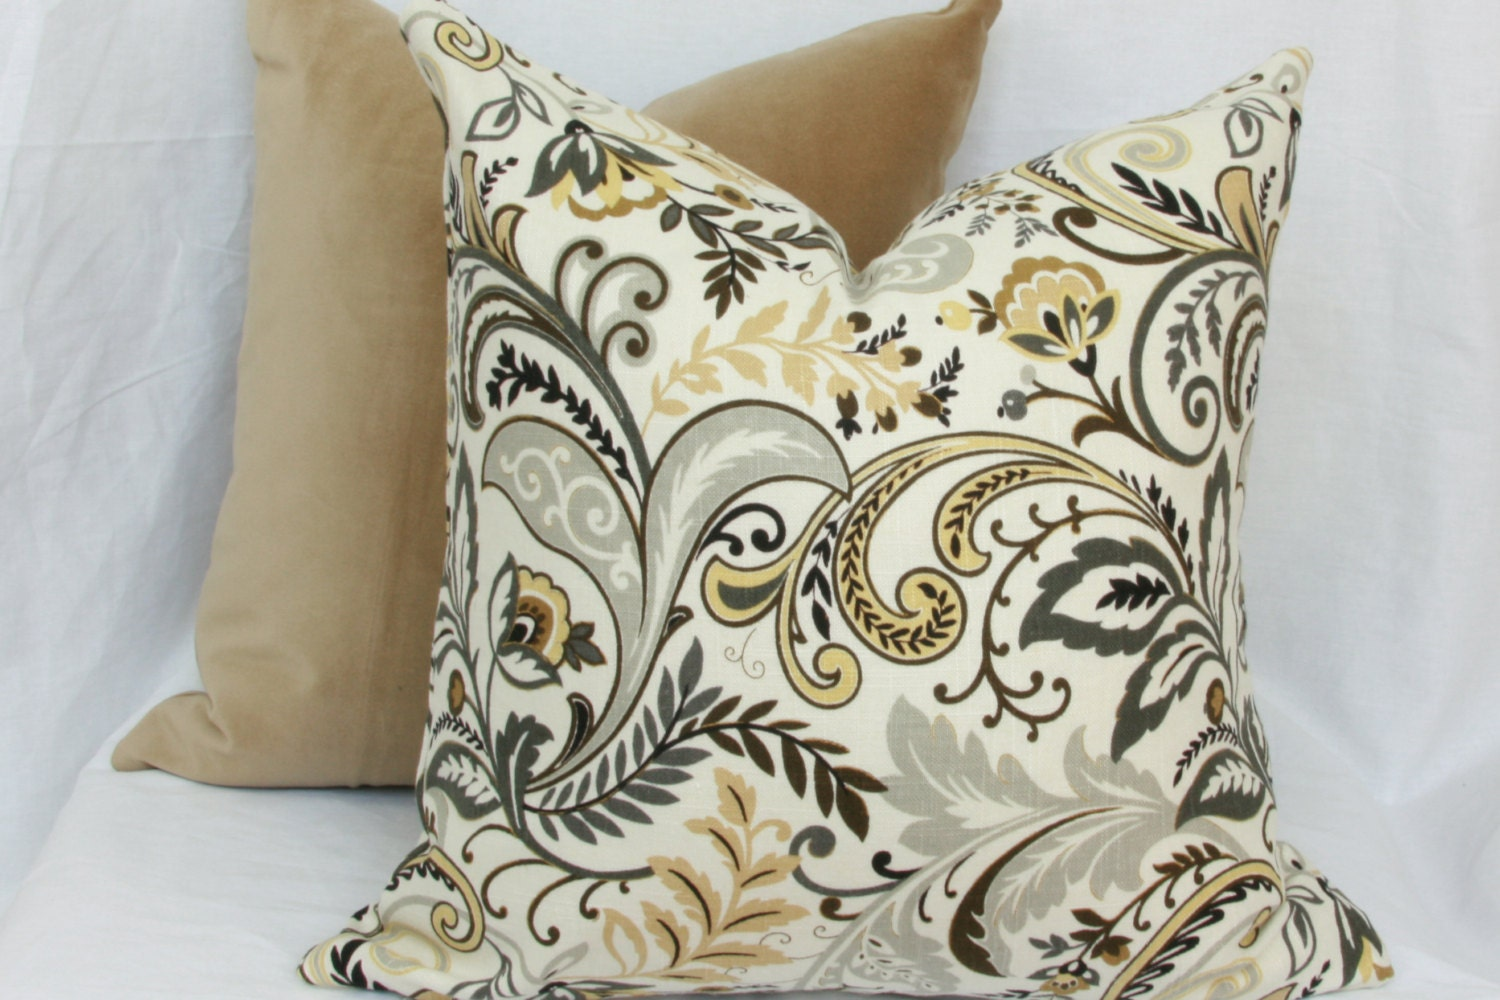 Throw Pillows Tan : Tan & grey linen decorative throw pillow cover. by JoyWorkshoppe